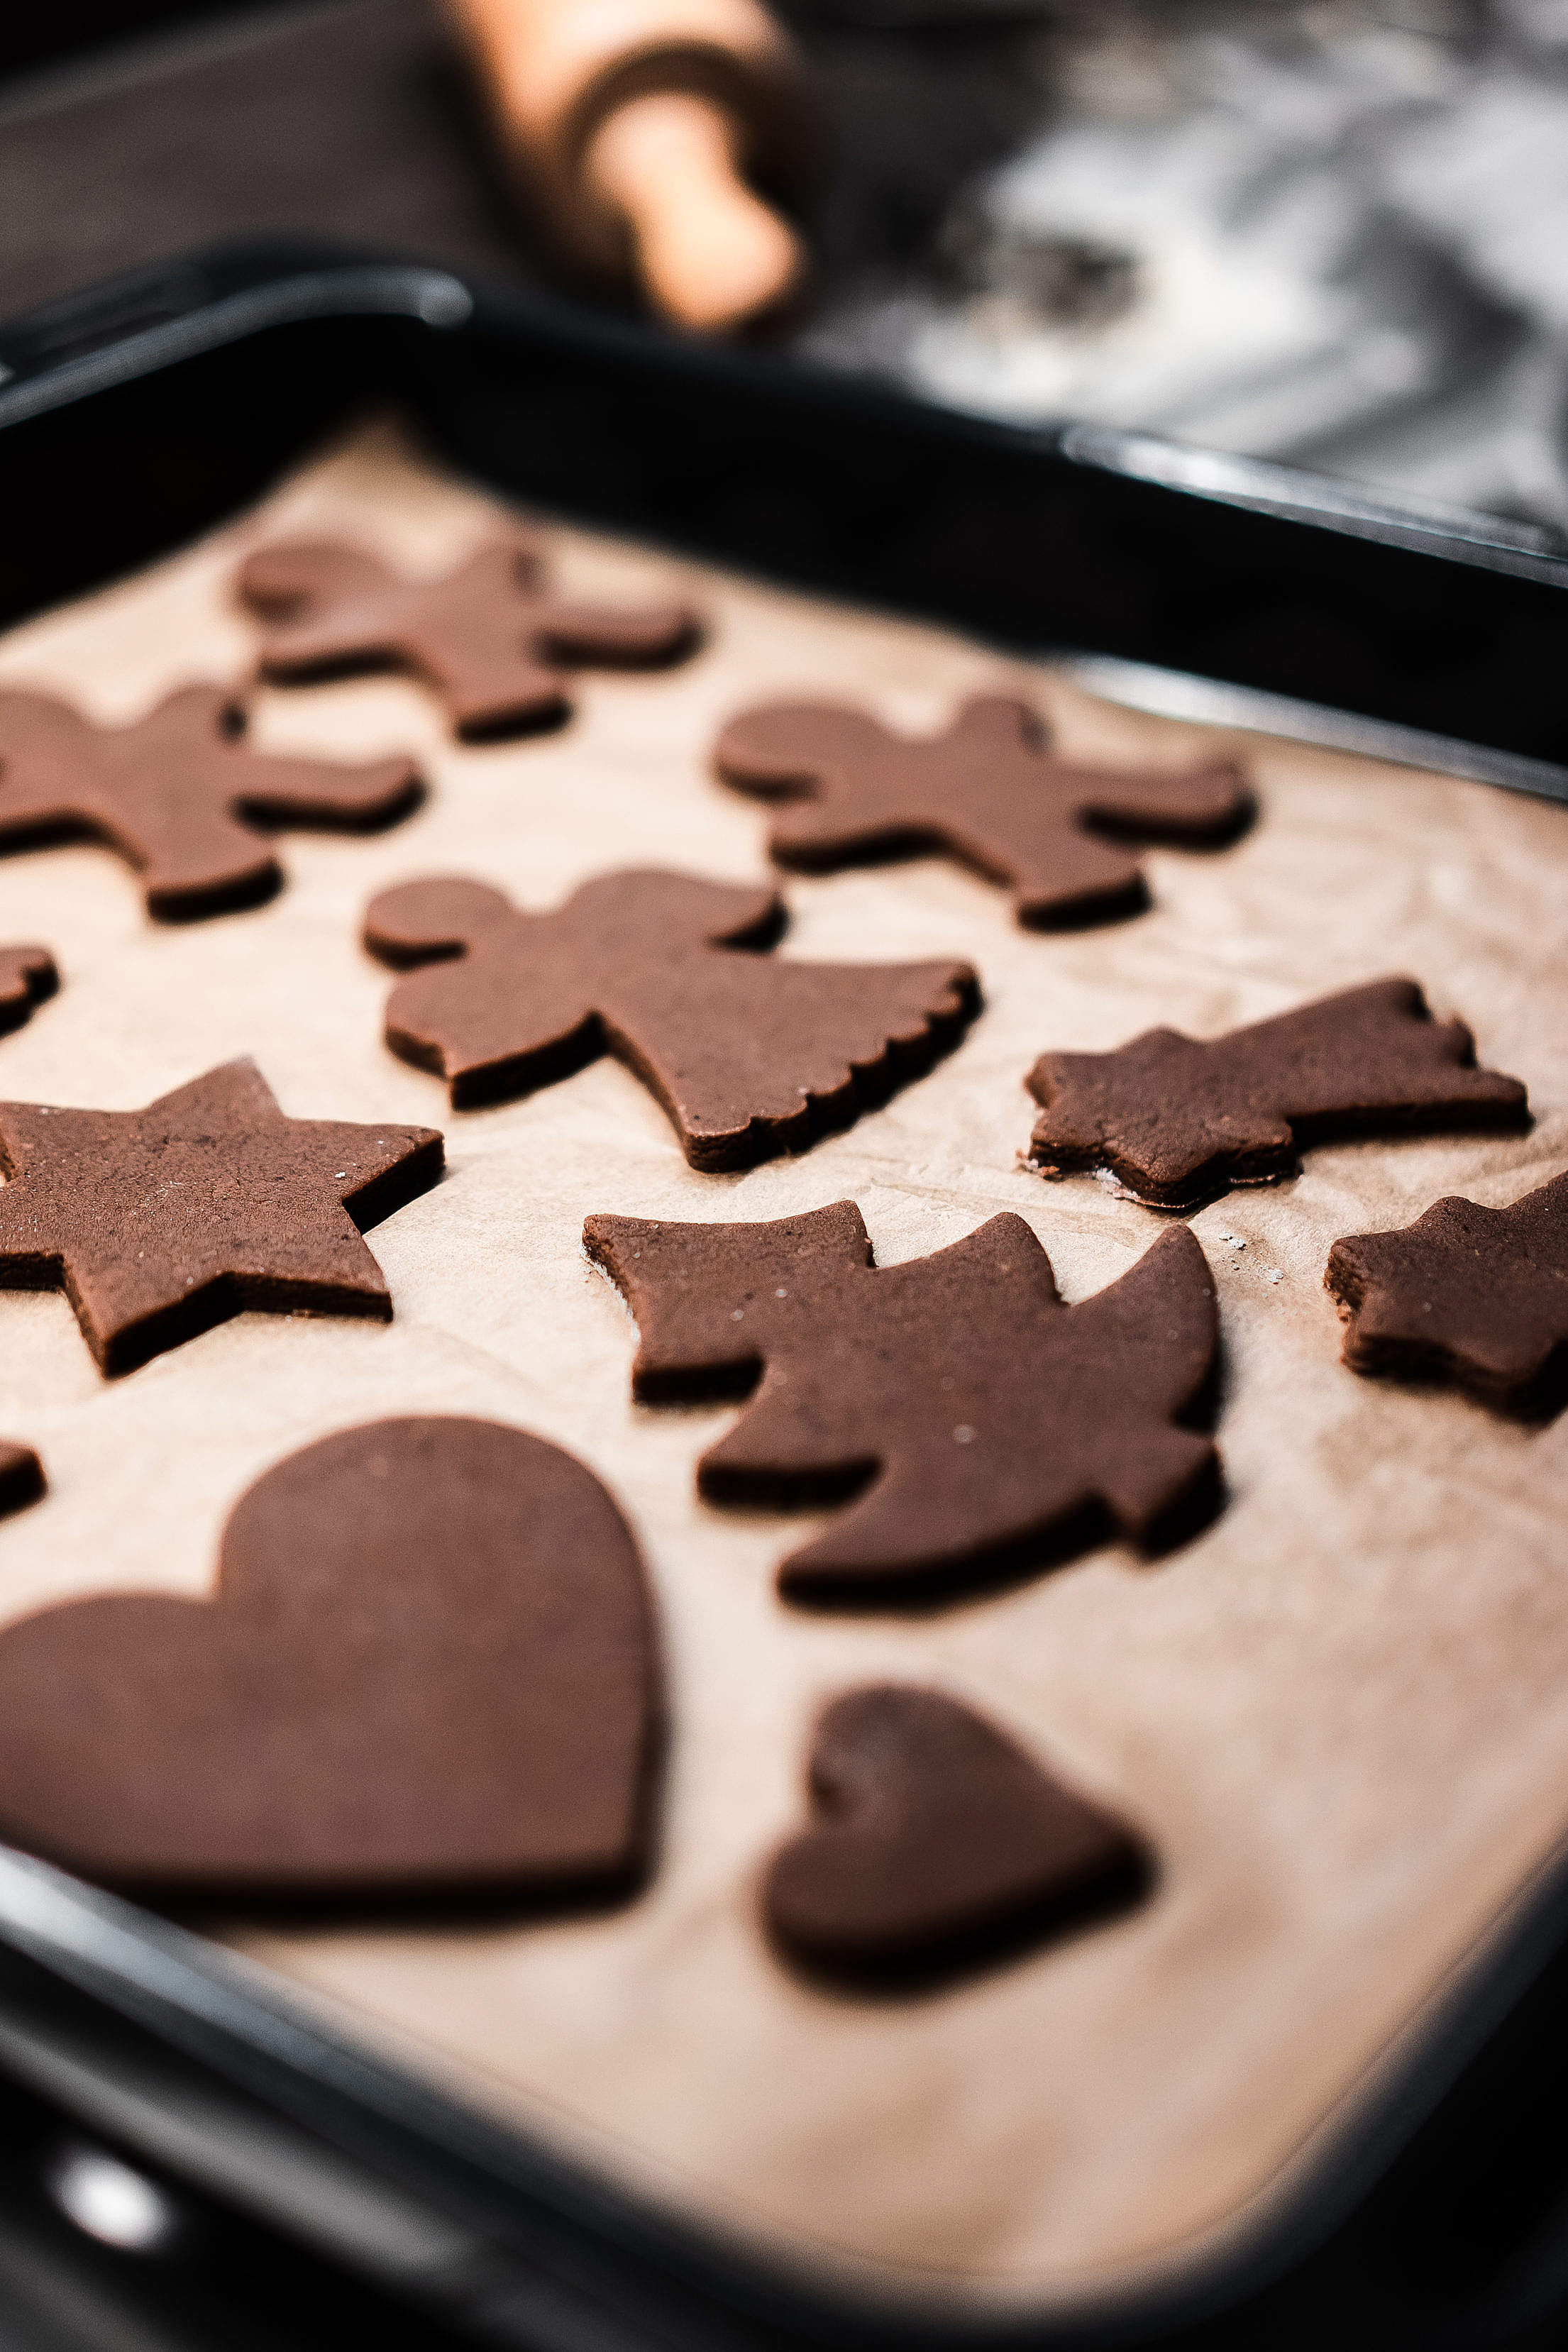 Baking Gingerbread Biscuits Free Stock Photo